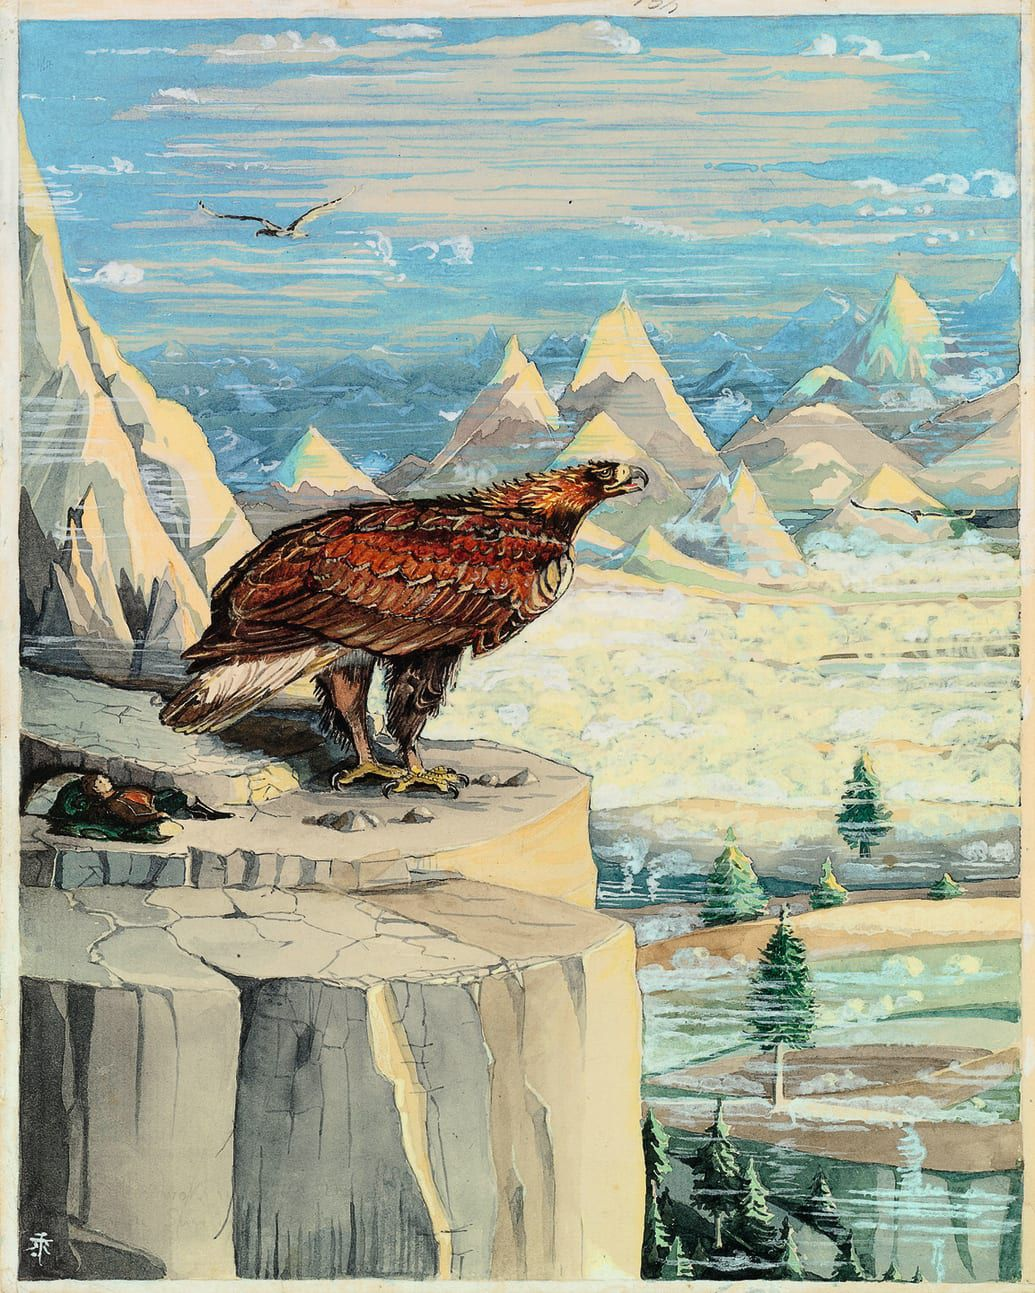 A giant eagle roosts on a mountaintop, with Bilbo Baggins reclining nearby.